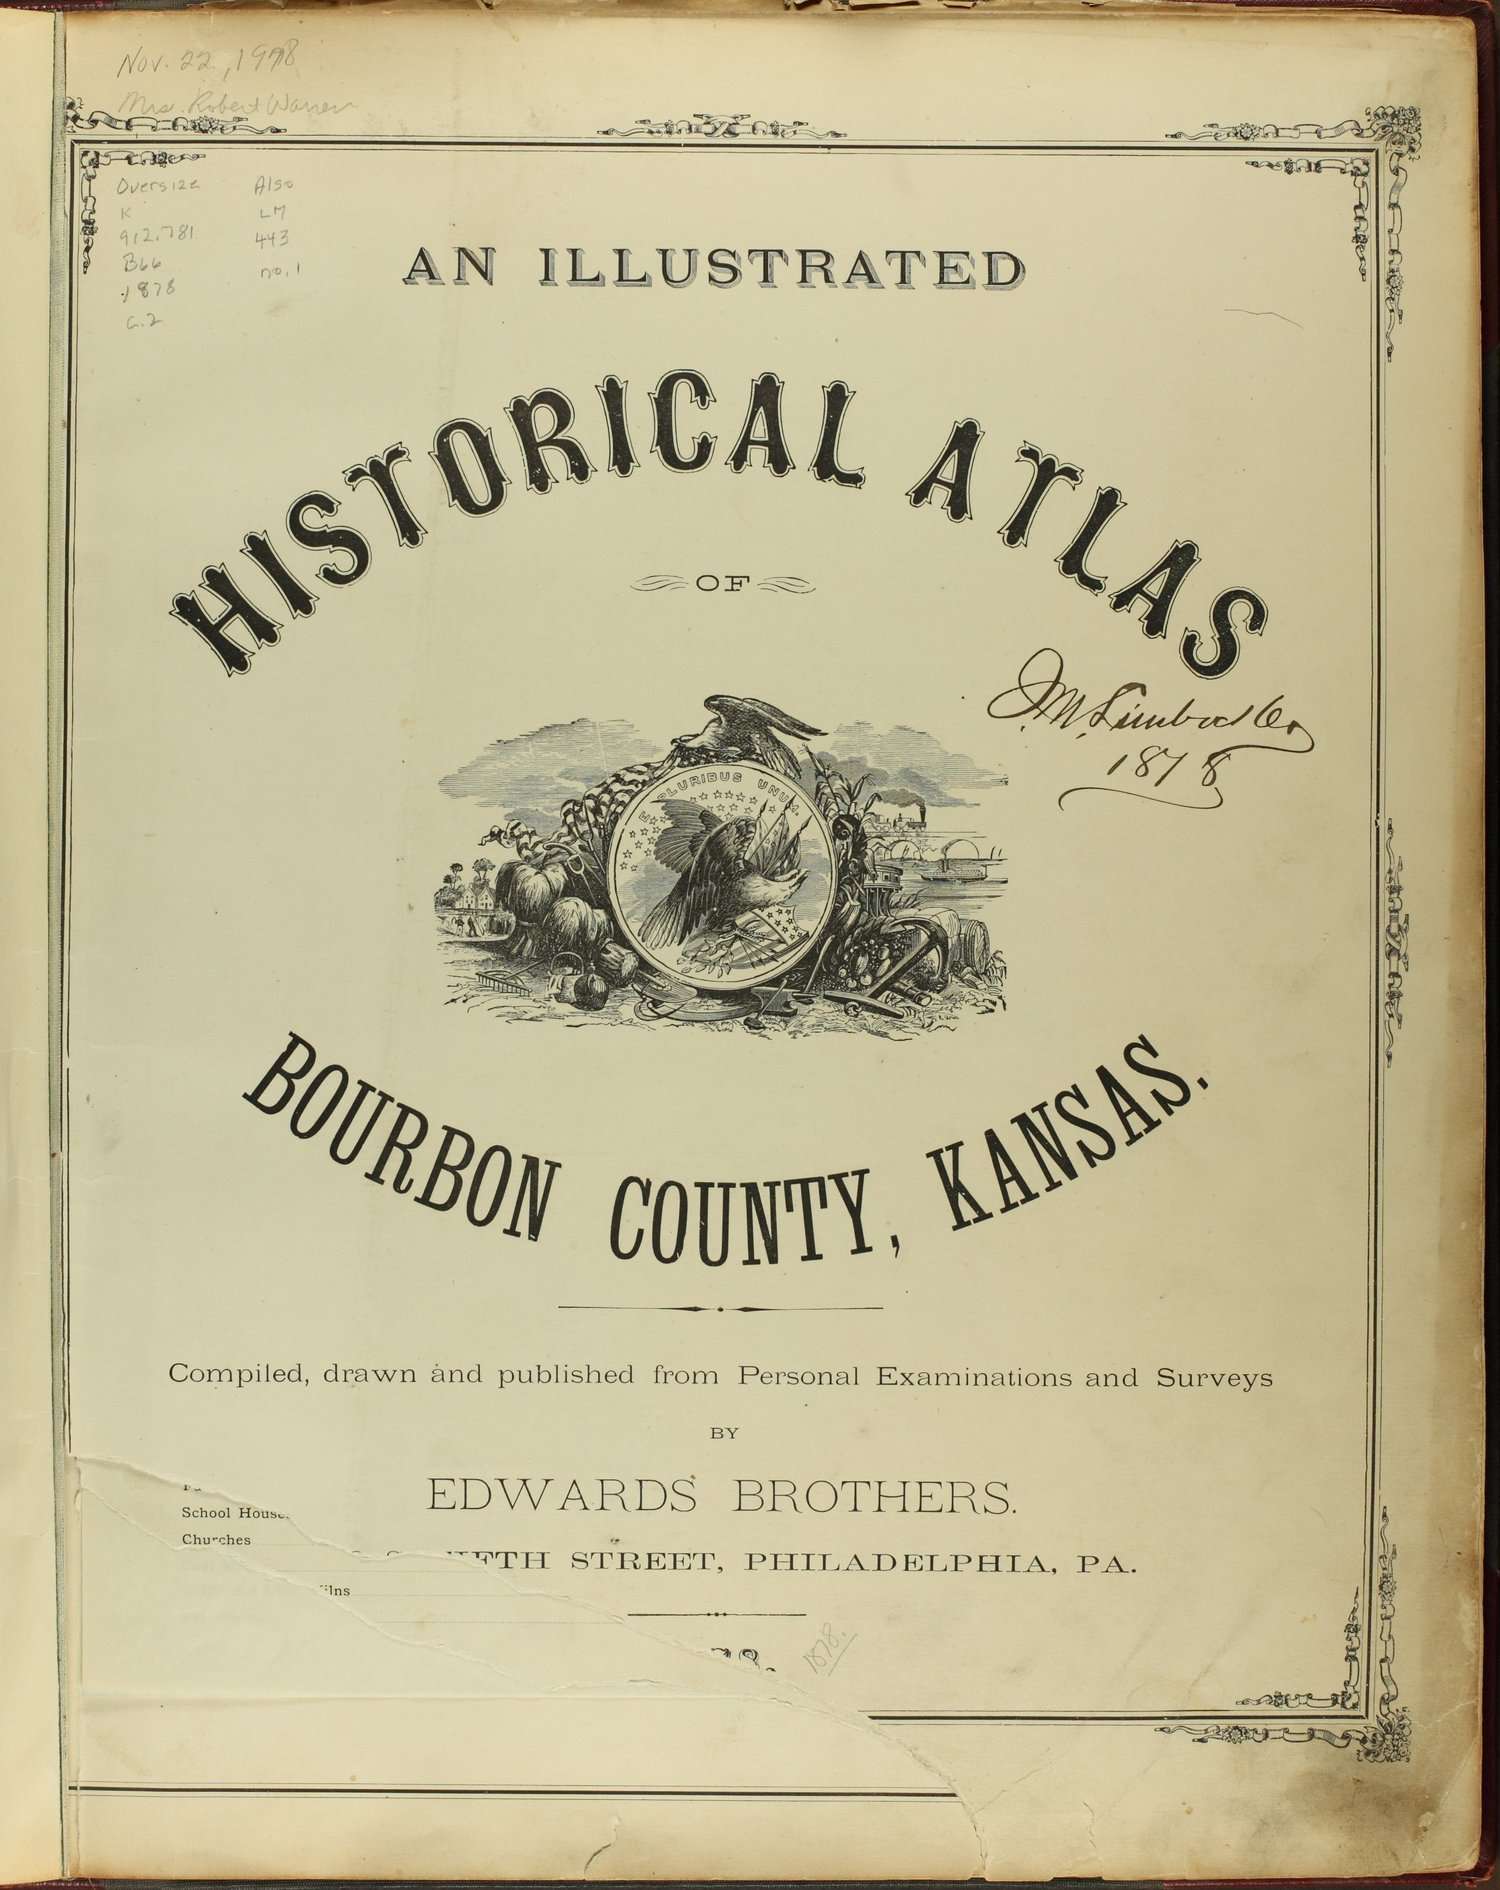 An illustrated historical atlas of Bourbon County, Kansas - Title Page